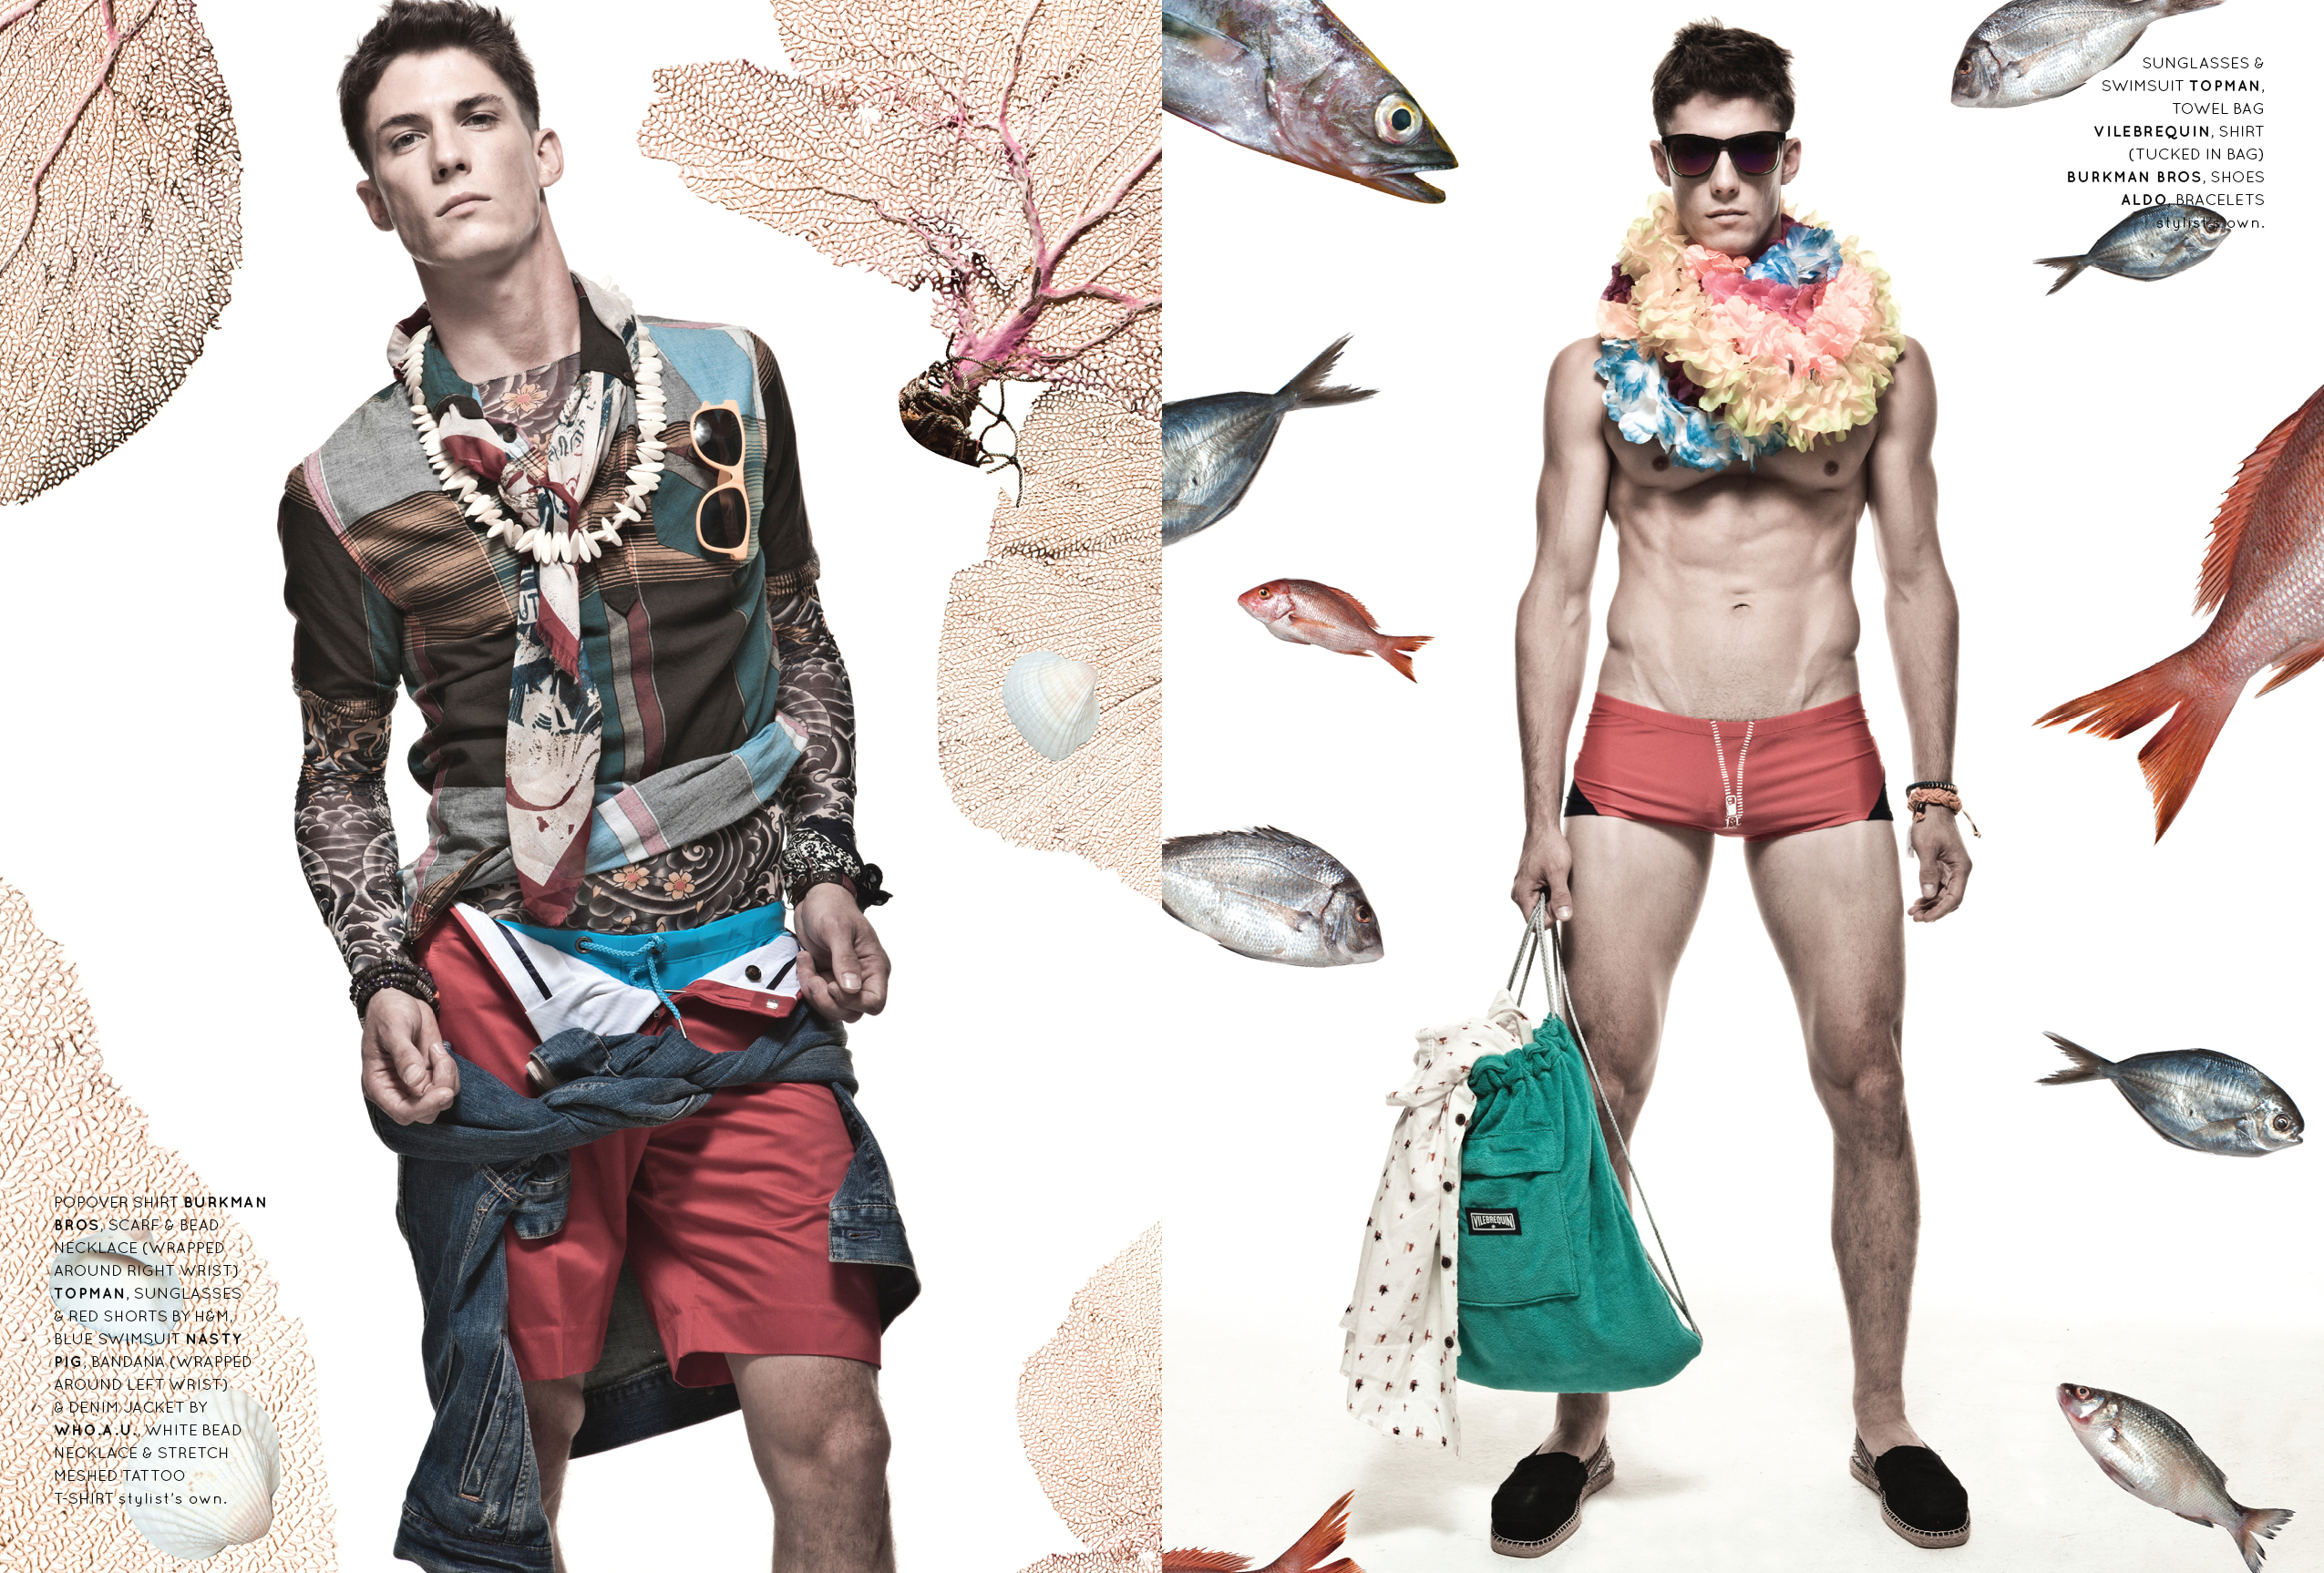 Left: popover shirt Burkman Bros, scarf & bead necklace (wrapped around right wrist) Topman, sunglasses & red shorts by H&M, blue swimsuit Nasty Pig, bandana (wrapped around left wrist) & denim jacket by Who.A.U., white bead necklace & stretch meshed tattoo t-shirt stylist's own. Right: sunglasses & swimsuit Topman, towel bag Vilebrequin, shirt (tucked in bag) Burkman Bros, shoes Aldo, bracelets stylist's own.